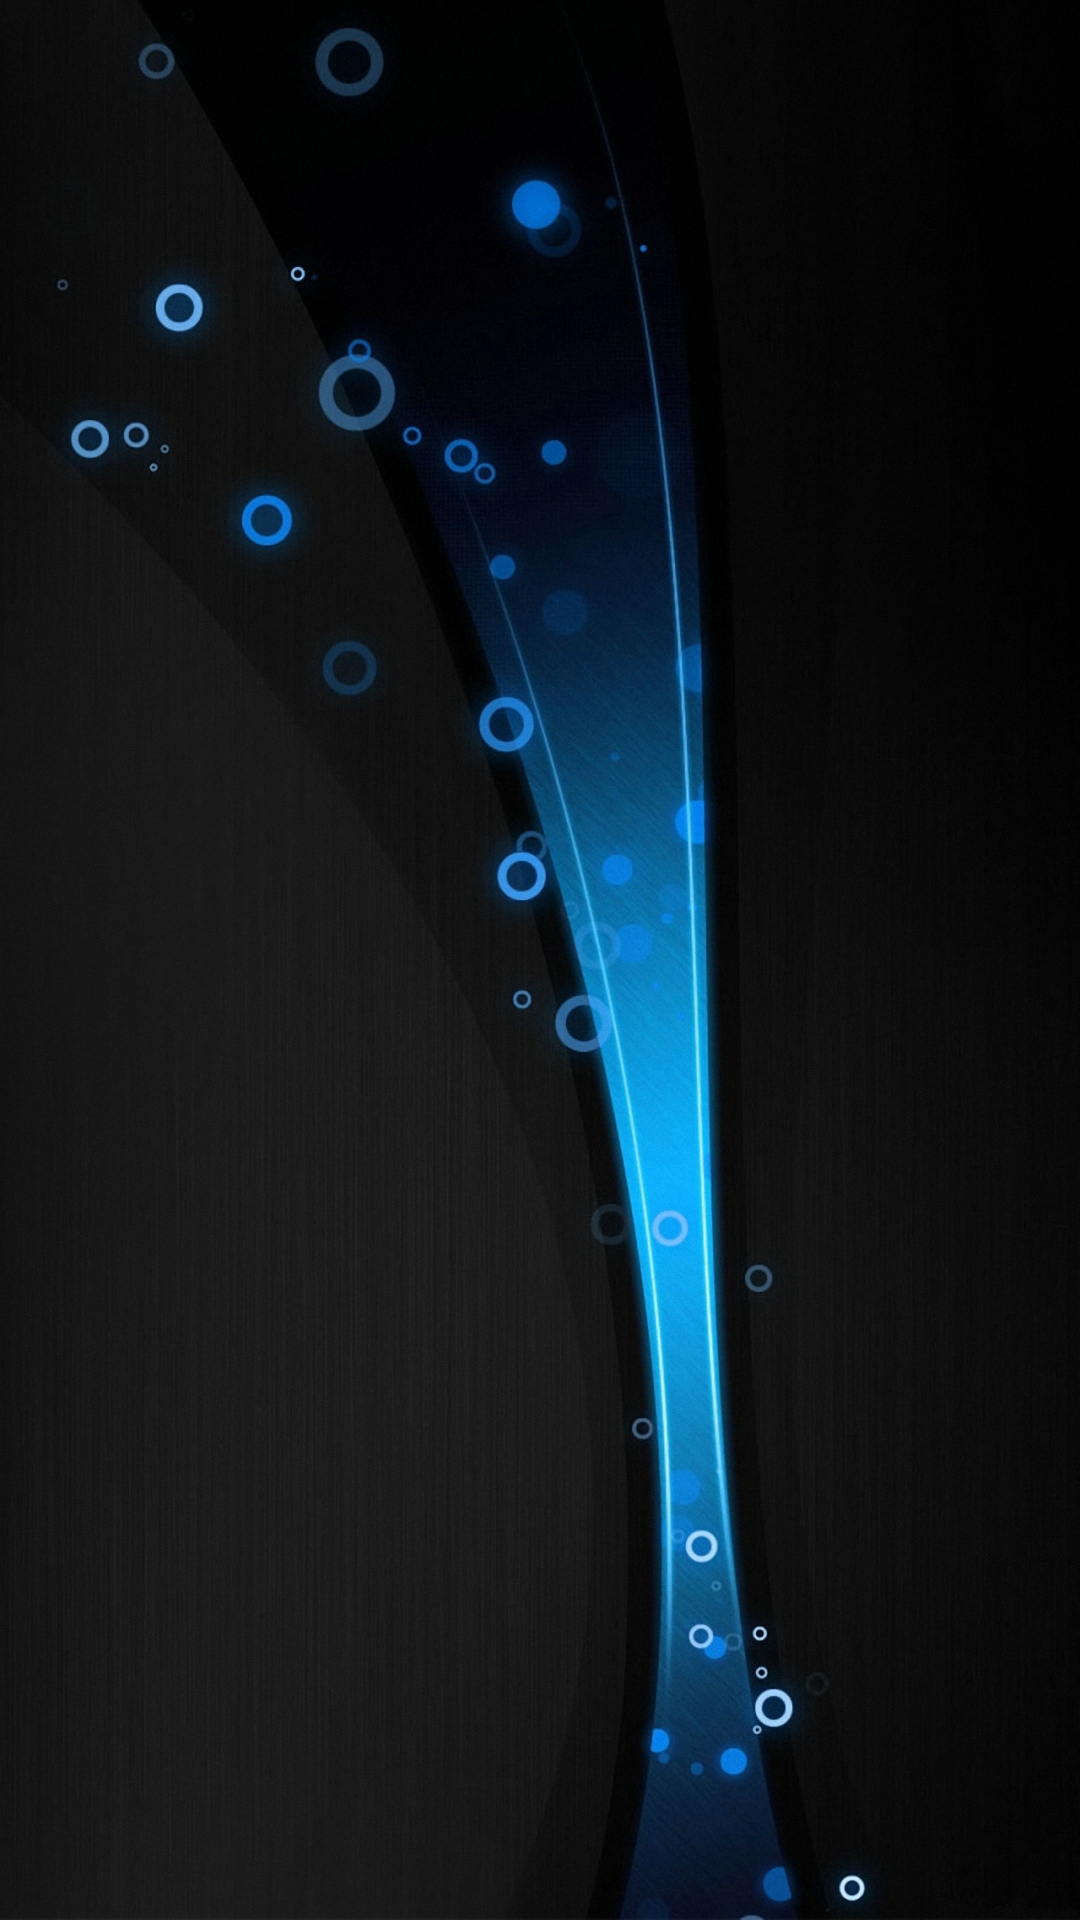 Dark Phone HD Wallpaper